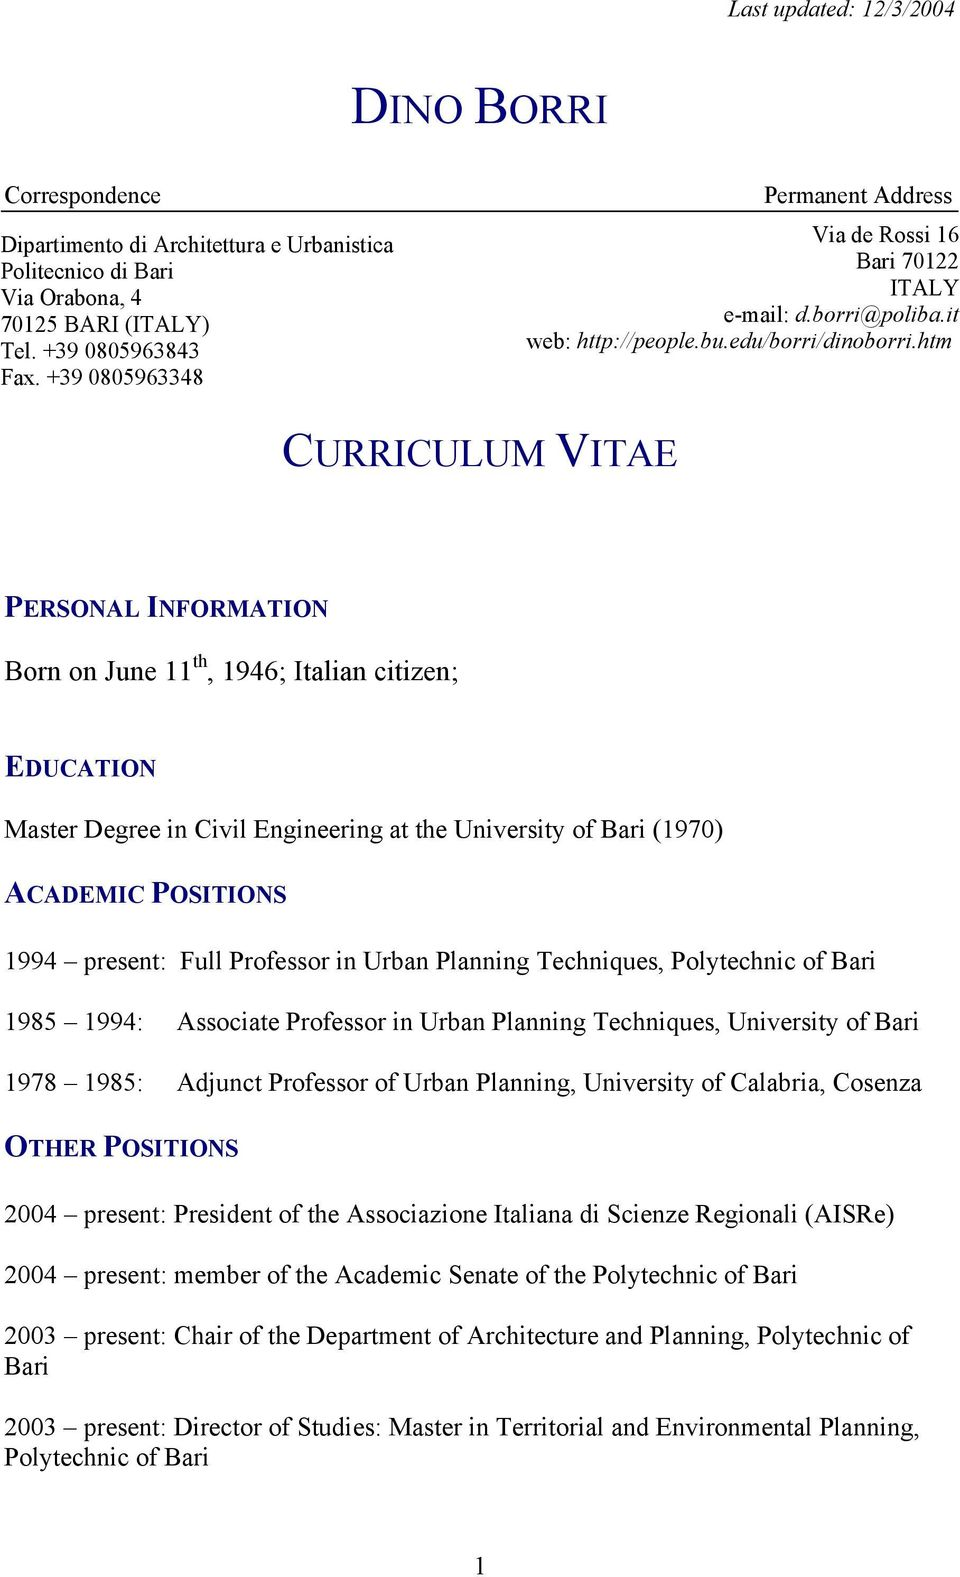 htm CURRICULUM VITAE PERSONAL INFORMATION Born on June 11 th, 1946; Italian citizen; EDUCATION Master Degree in Civil Engineering at the University of Bari (1970) ACADEMIC POSITIONS 1994 present: